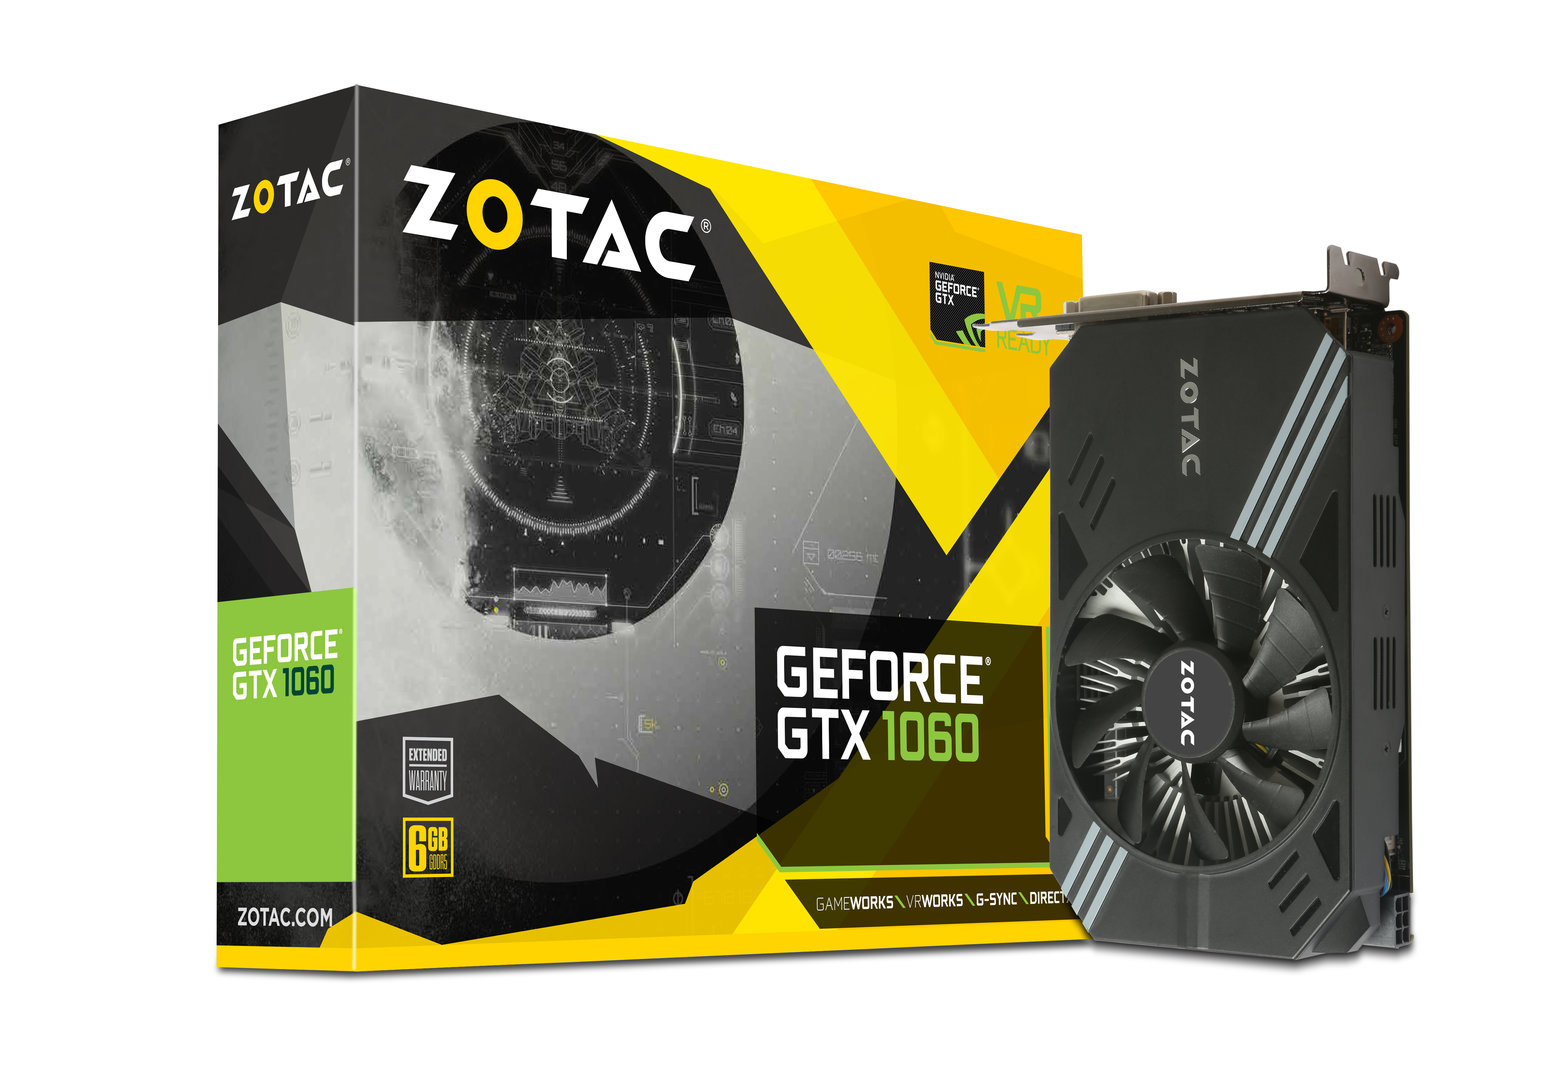 Zotac GTX 1060 Mini